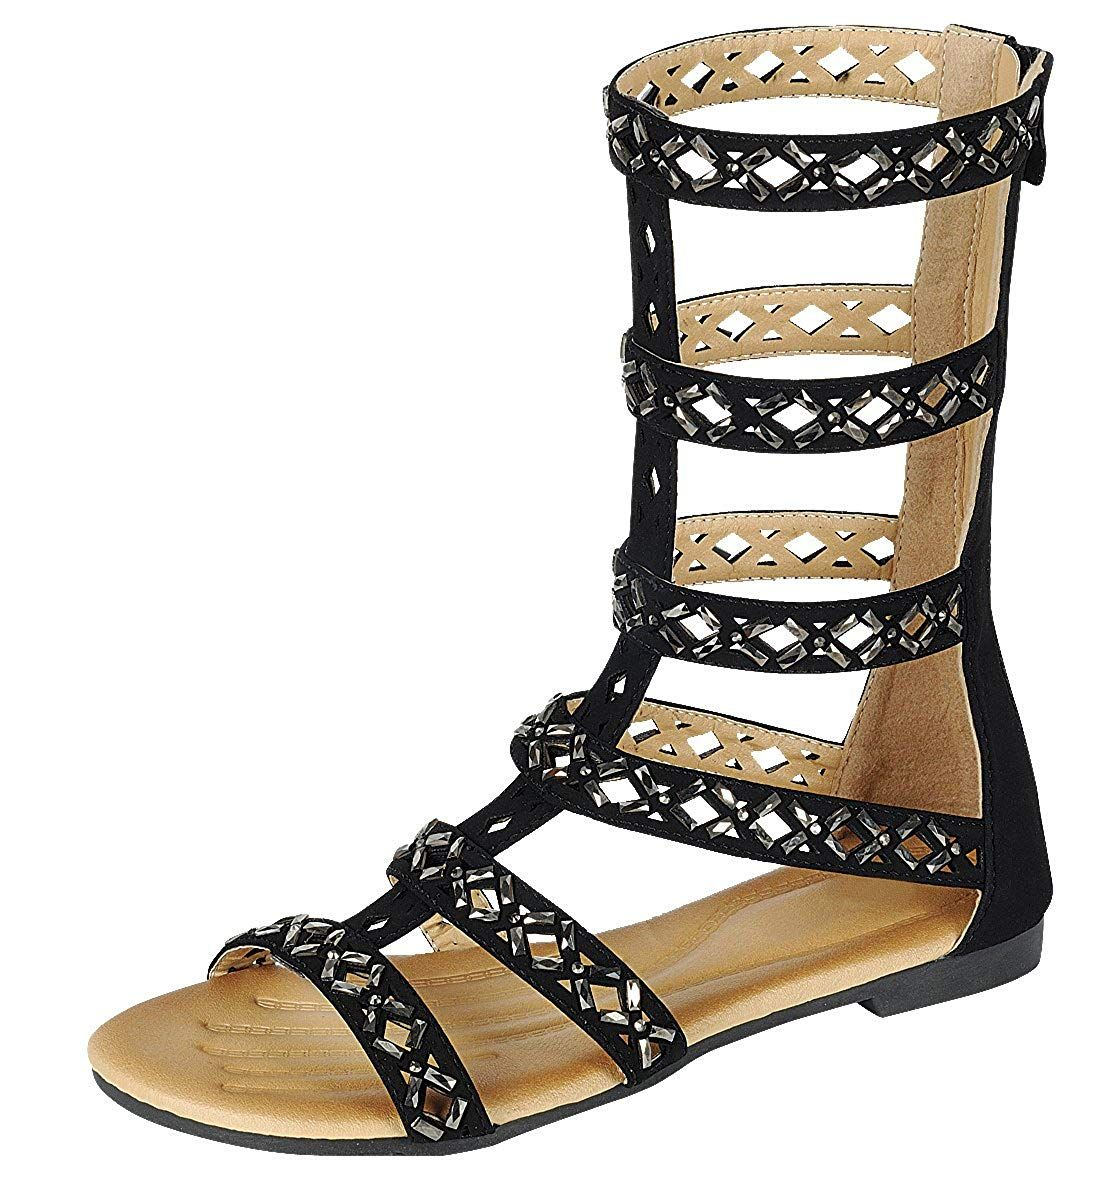 04dad650a2bb Anika 66 Womens Fringe Thong Flat Gladiator Sandals - Black - C811ZZXI1J1